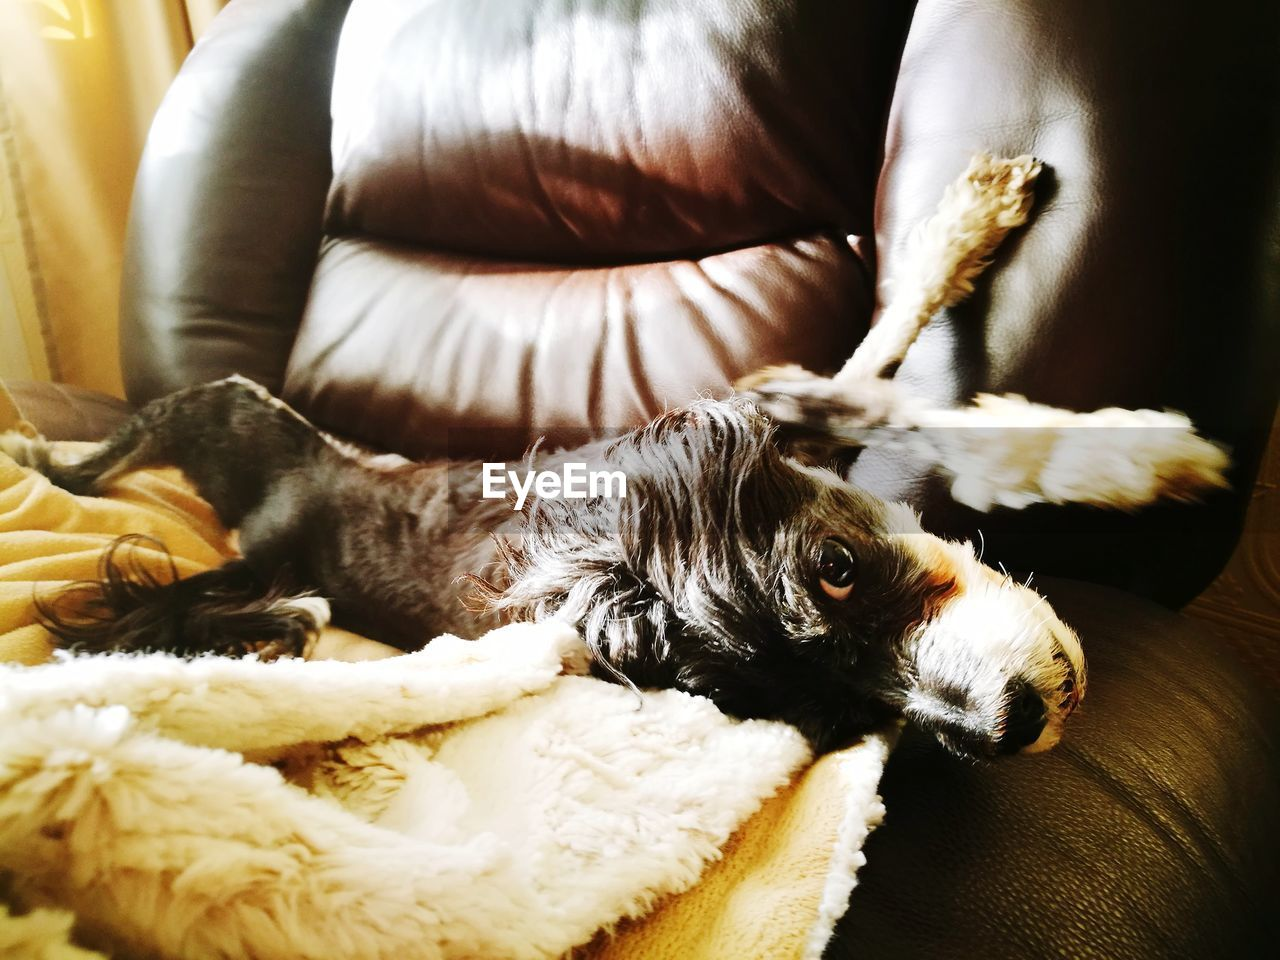 animal themes, domestic, pets, mammal, domestic animals, animal, one animal, vertebrate, canine, dog, relaxation, indoors, furniture, no people, resting, home interior, lap dog, bed, comfortable, portrait, small, animal head, duvet